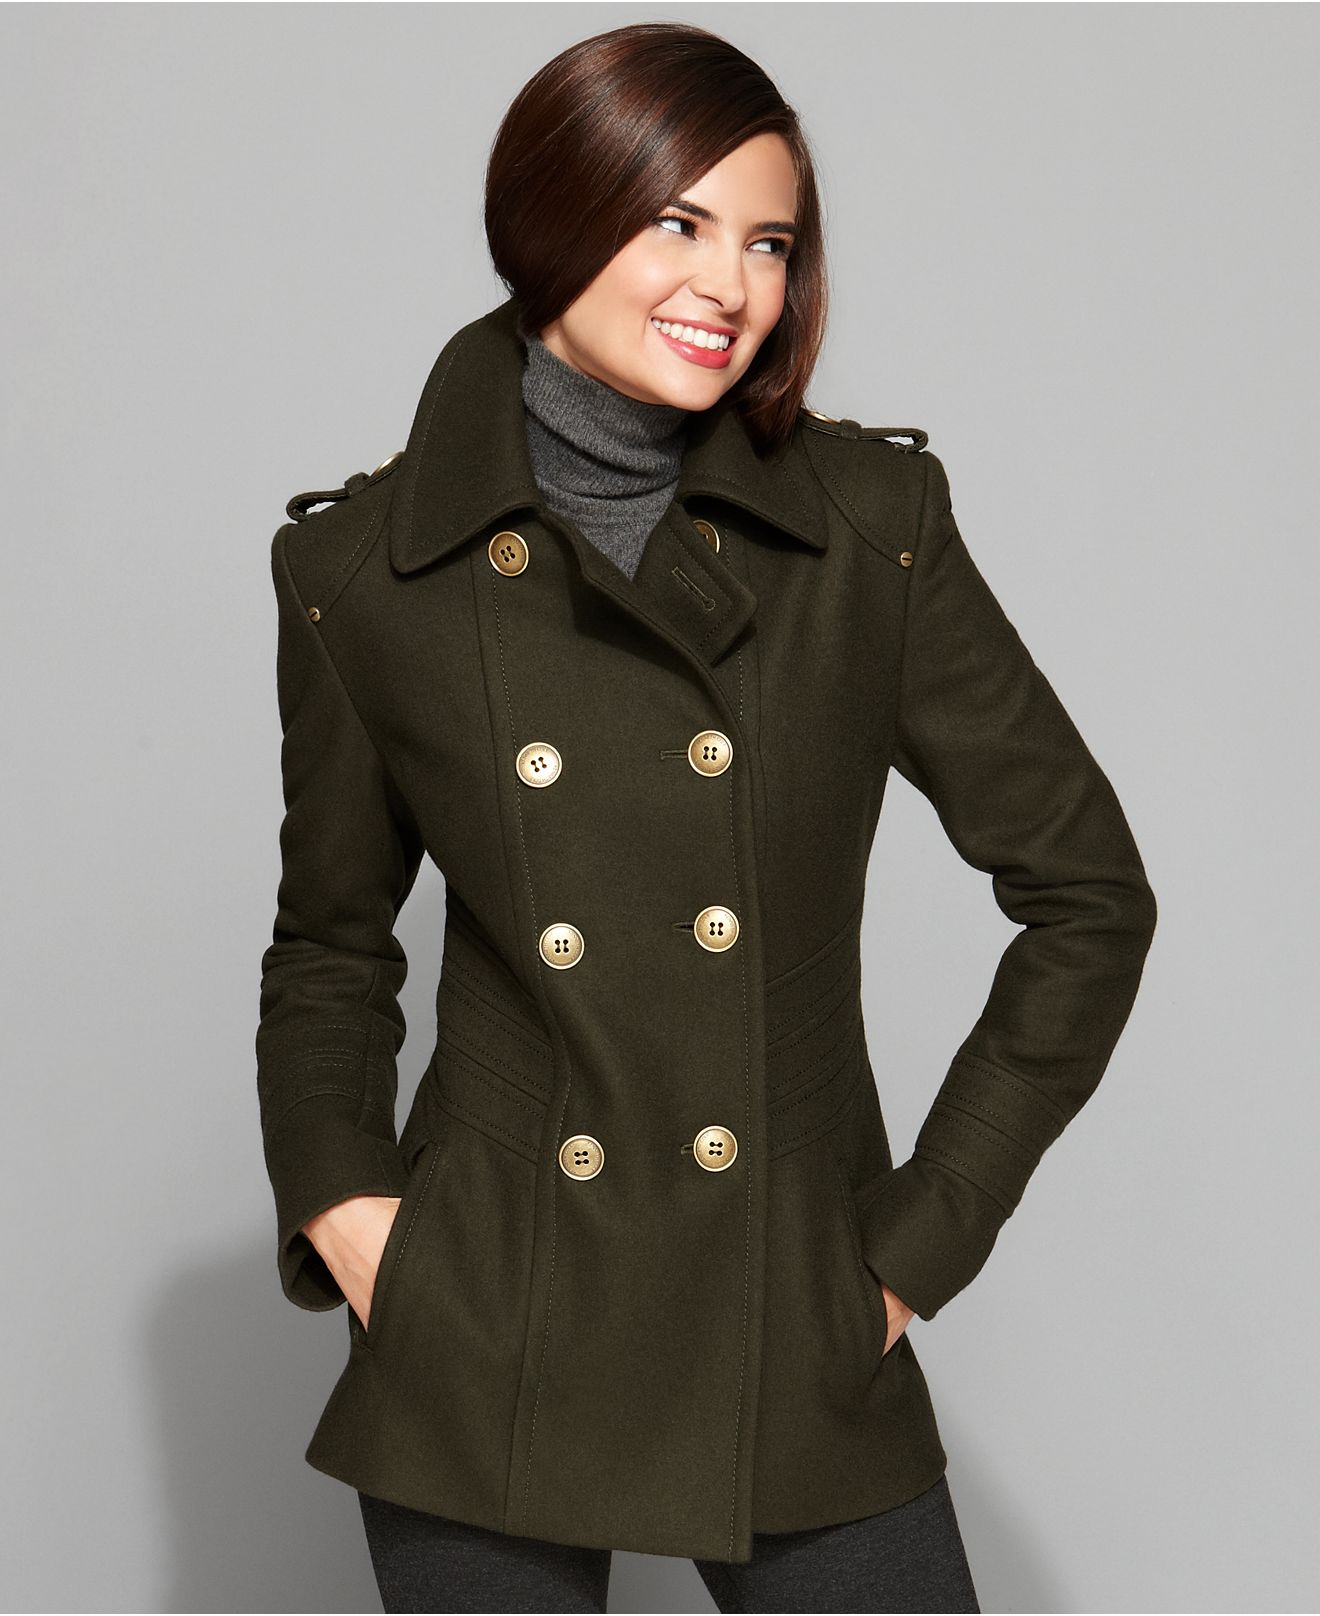 Women in coat